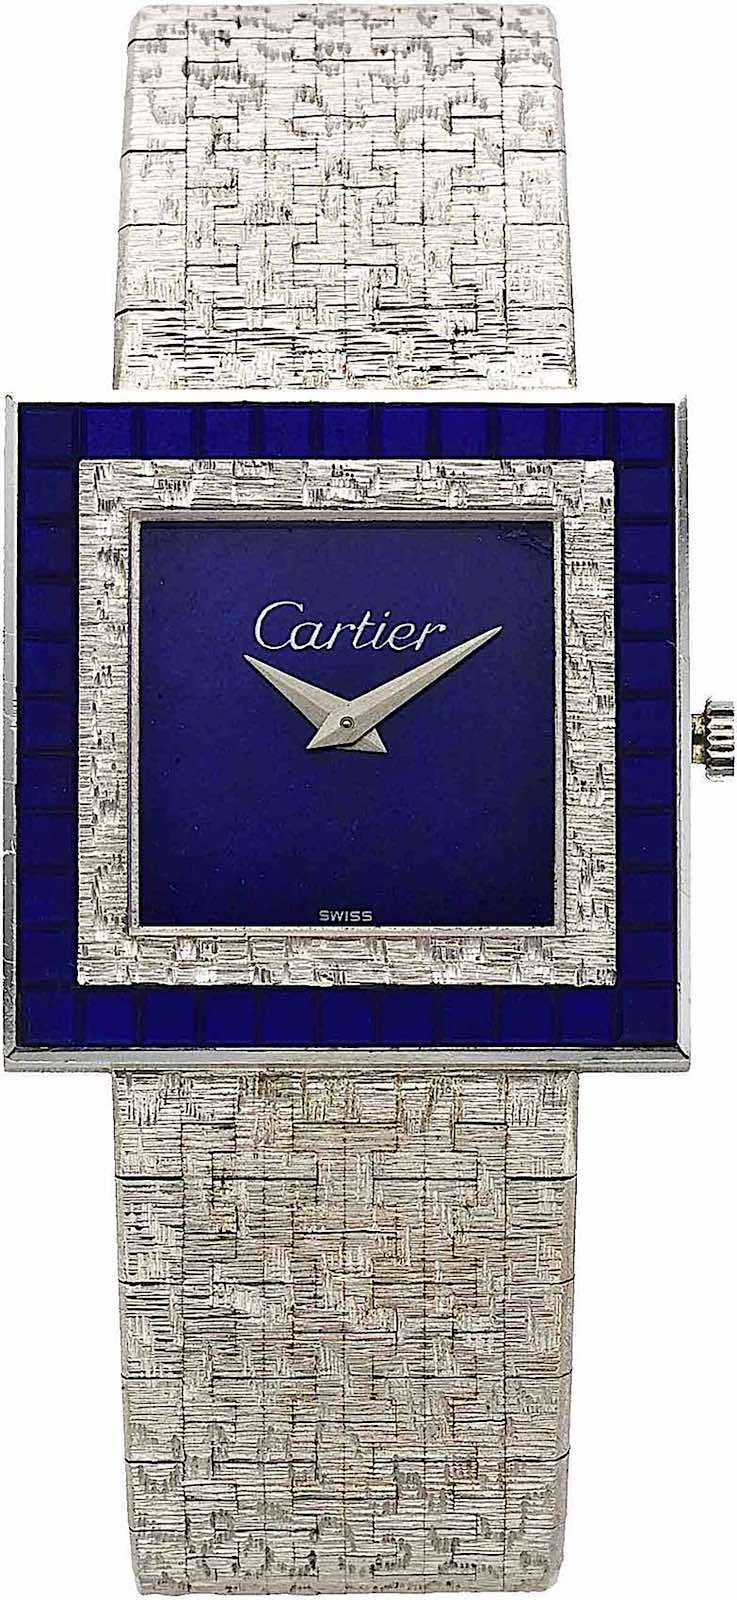 a Cartier watch photograph, 1970 silver and blue